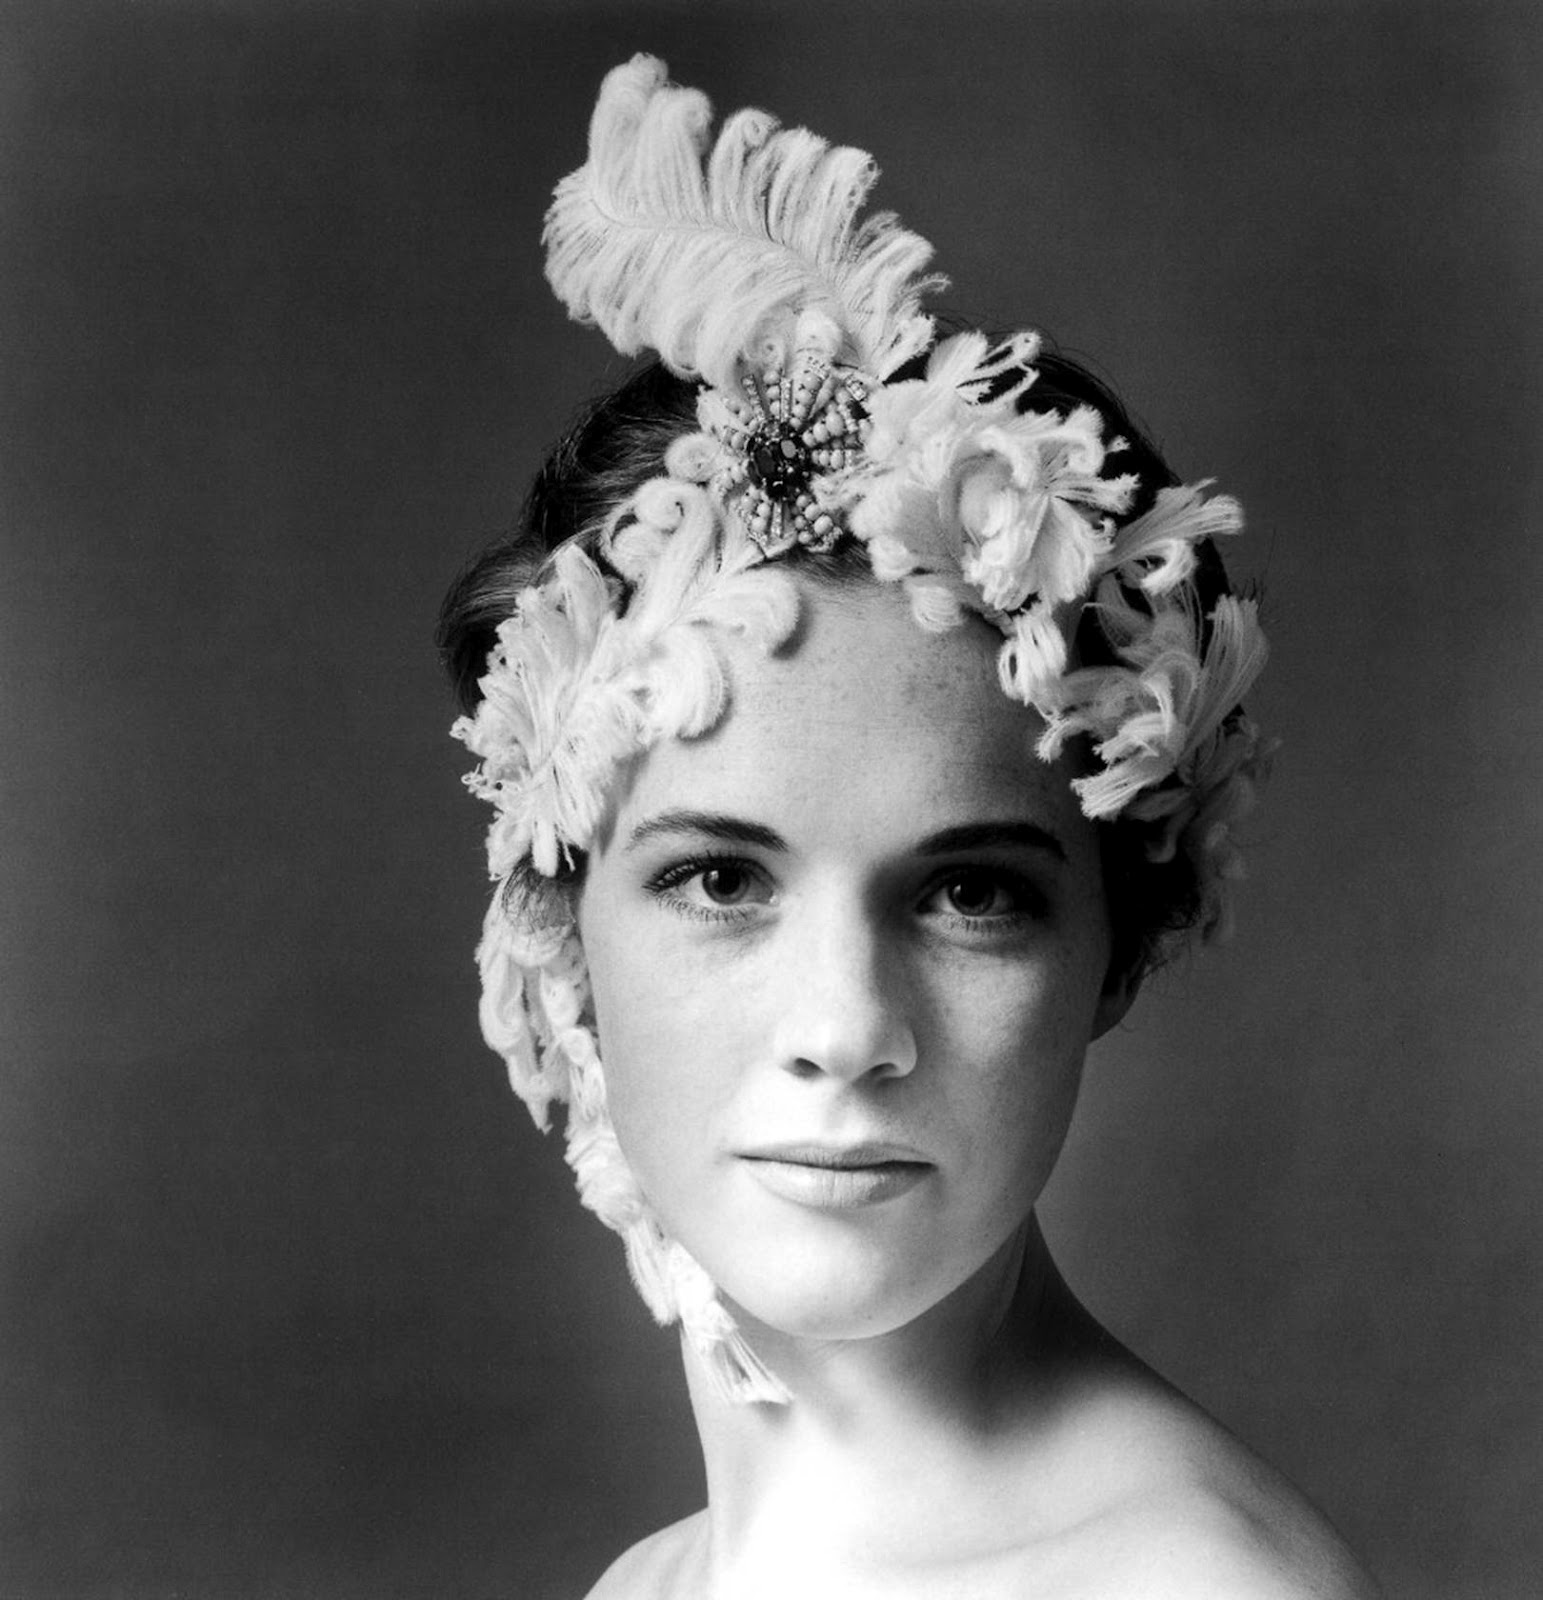 Torn curtain julie andrews - Born On This Day October 1st Julia Elizabeth Wells Tagged With Torn Curtain